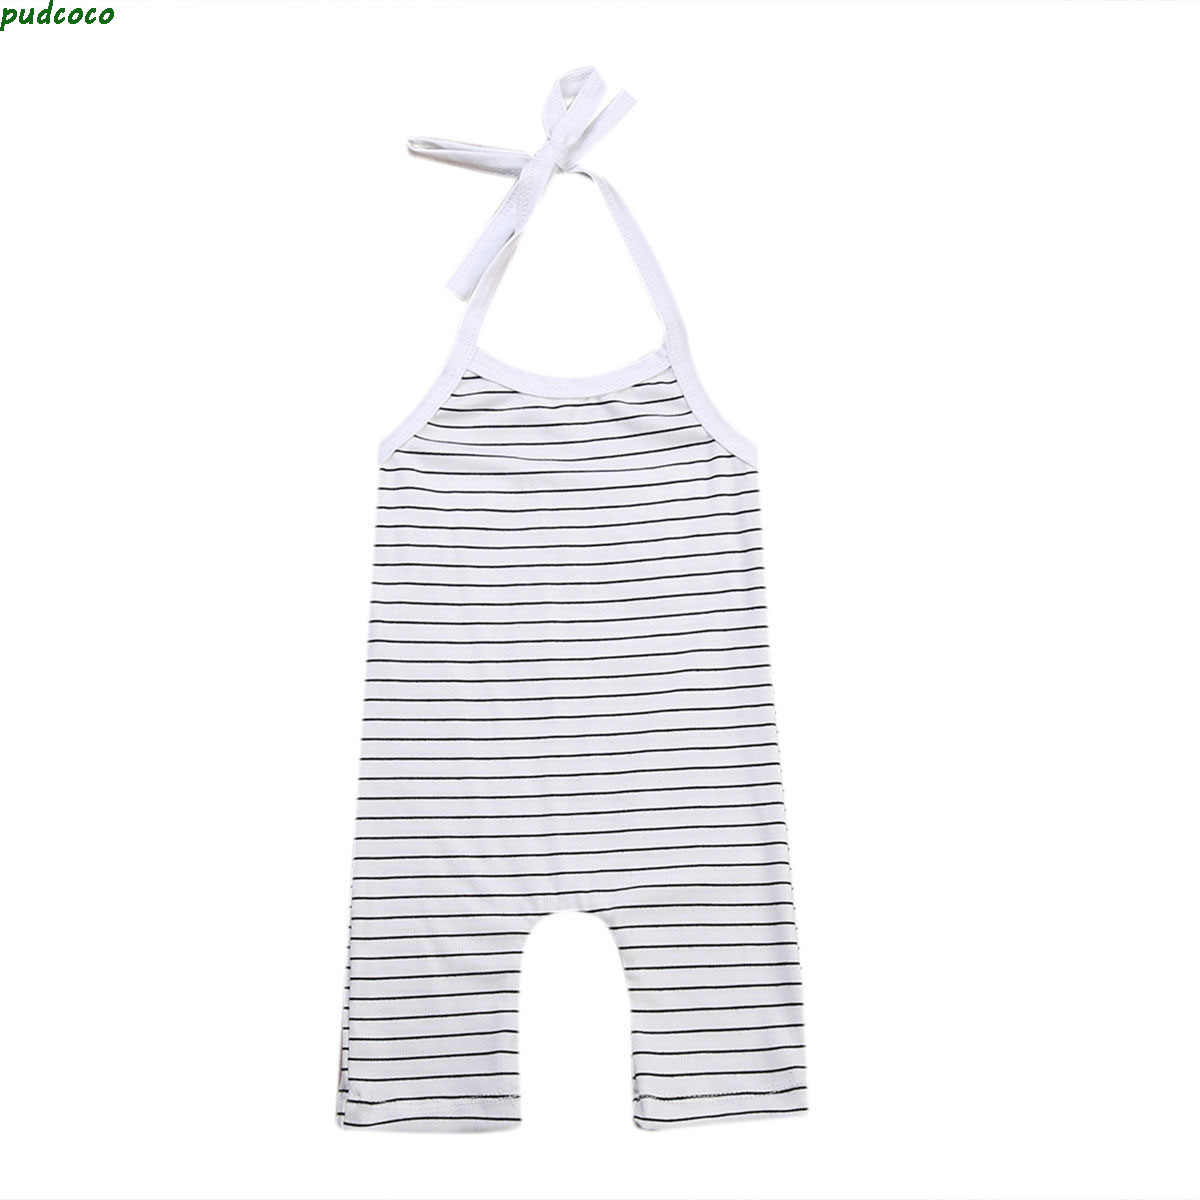 Pretty Newborn Baby Girl Boy Clothes Lovely Striped Romper Summer Sleeveless Backless Toddlers Jumpsuit Outfits Sunsuit Clothes